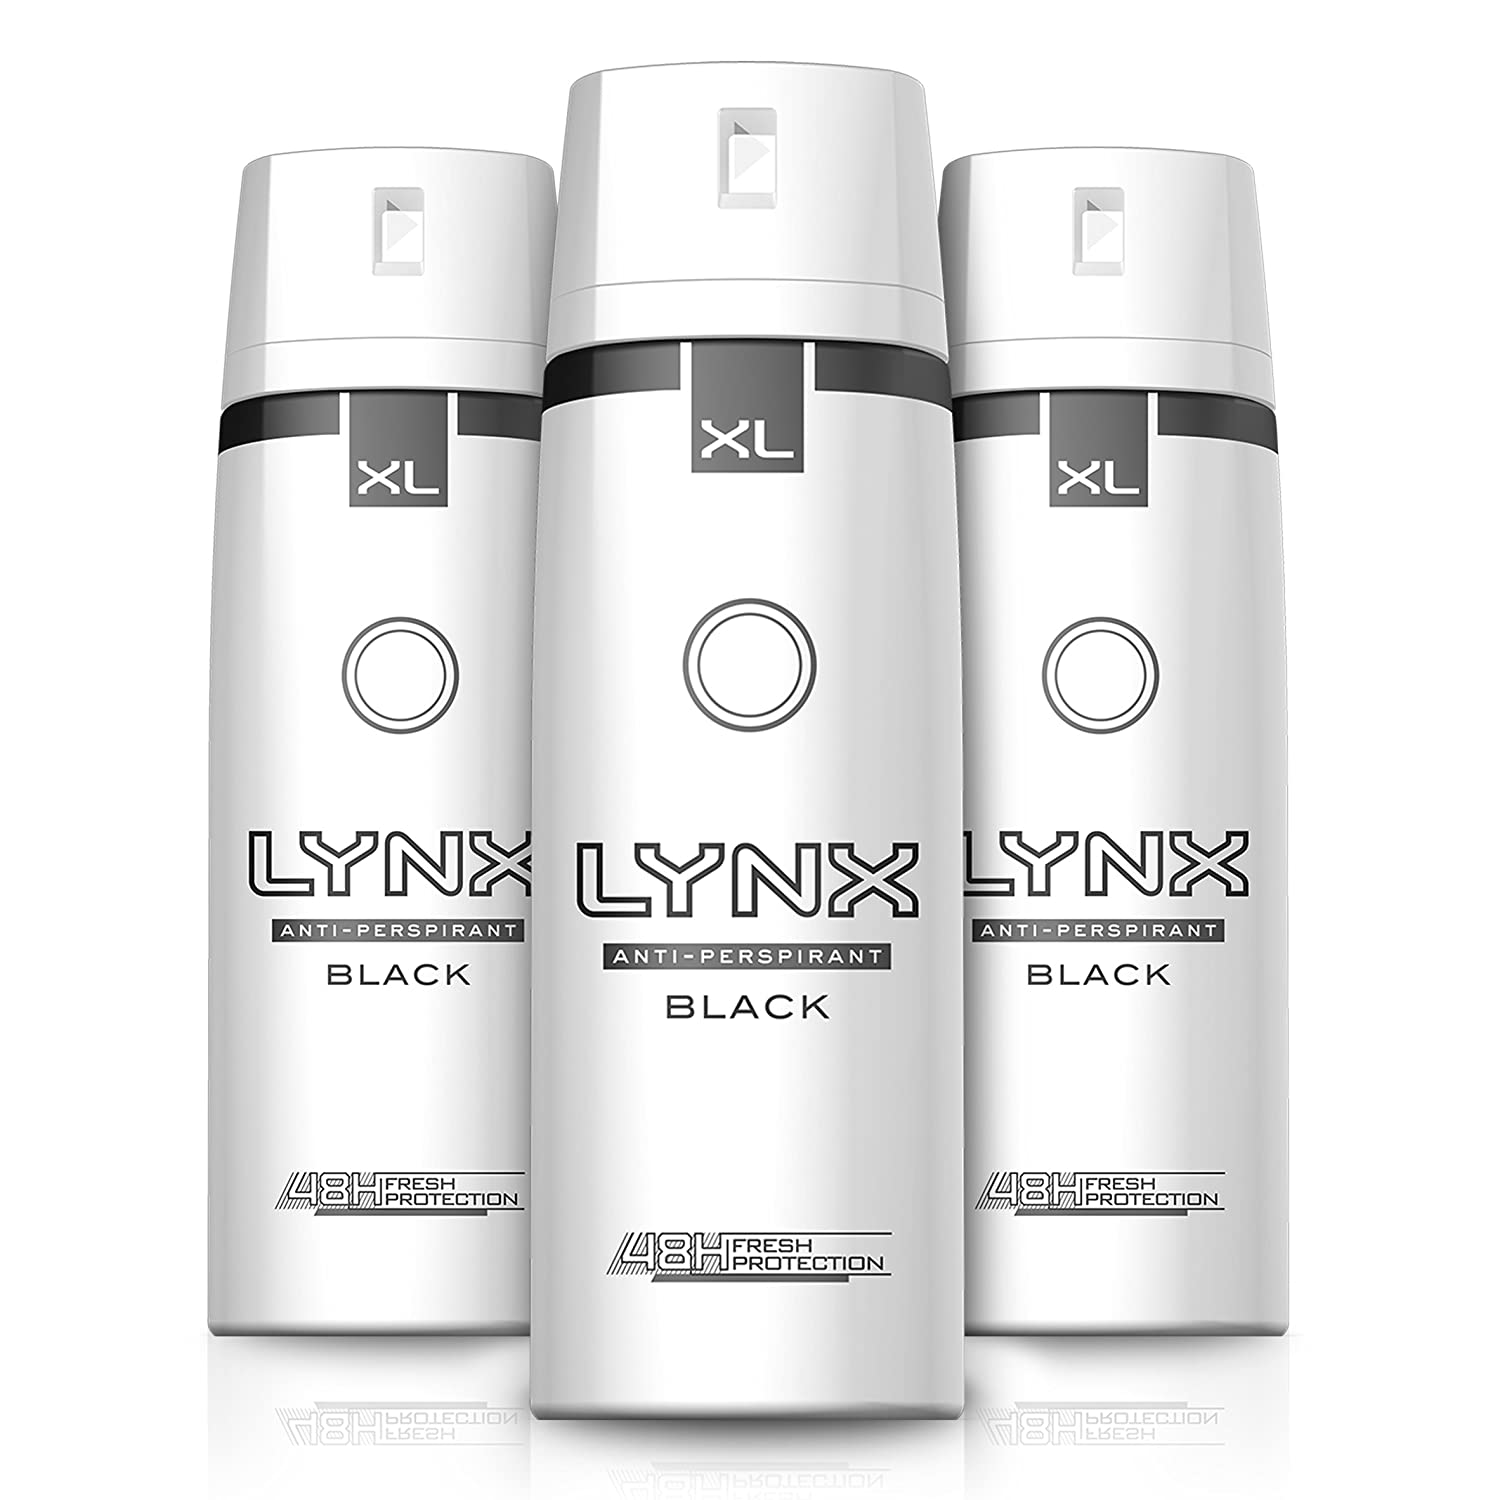 Lynx Dry Black Aerosol Anti-Perspirant Deodorant 200 ml - Pack of 3 Unilever 9029680